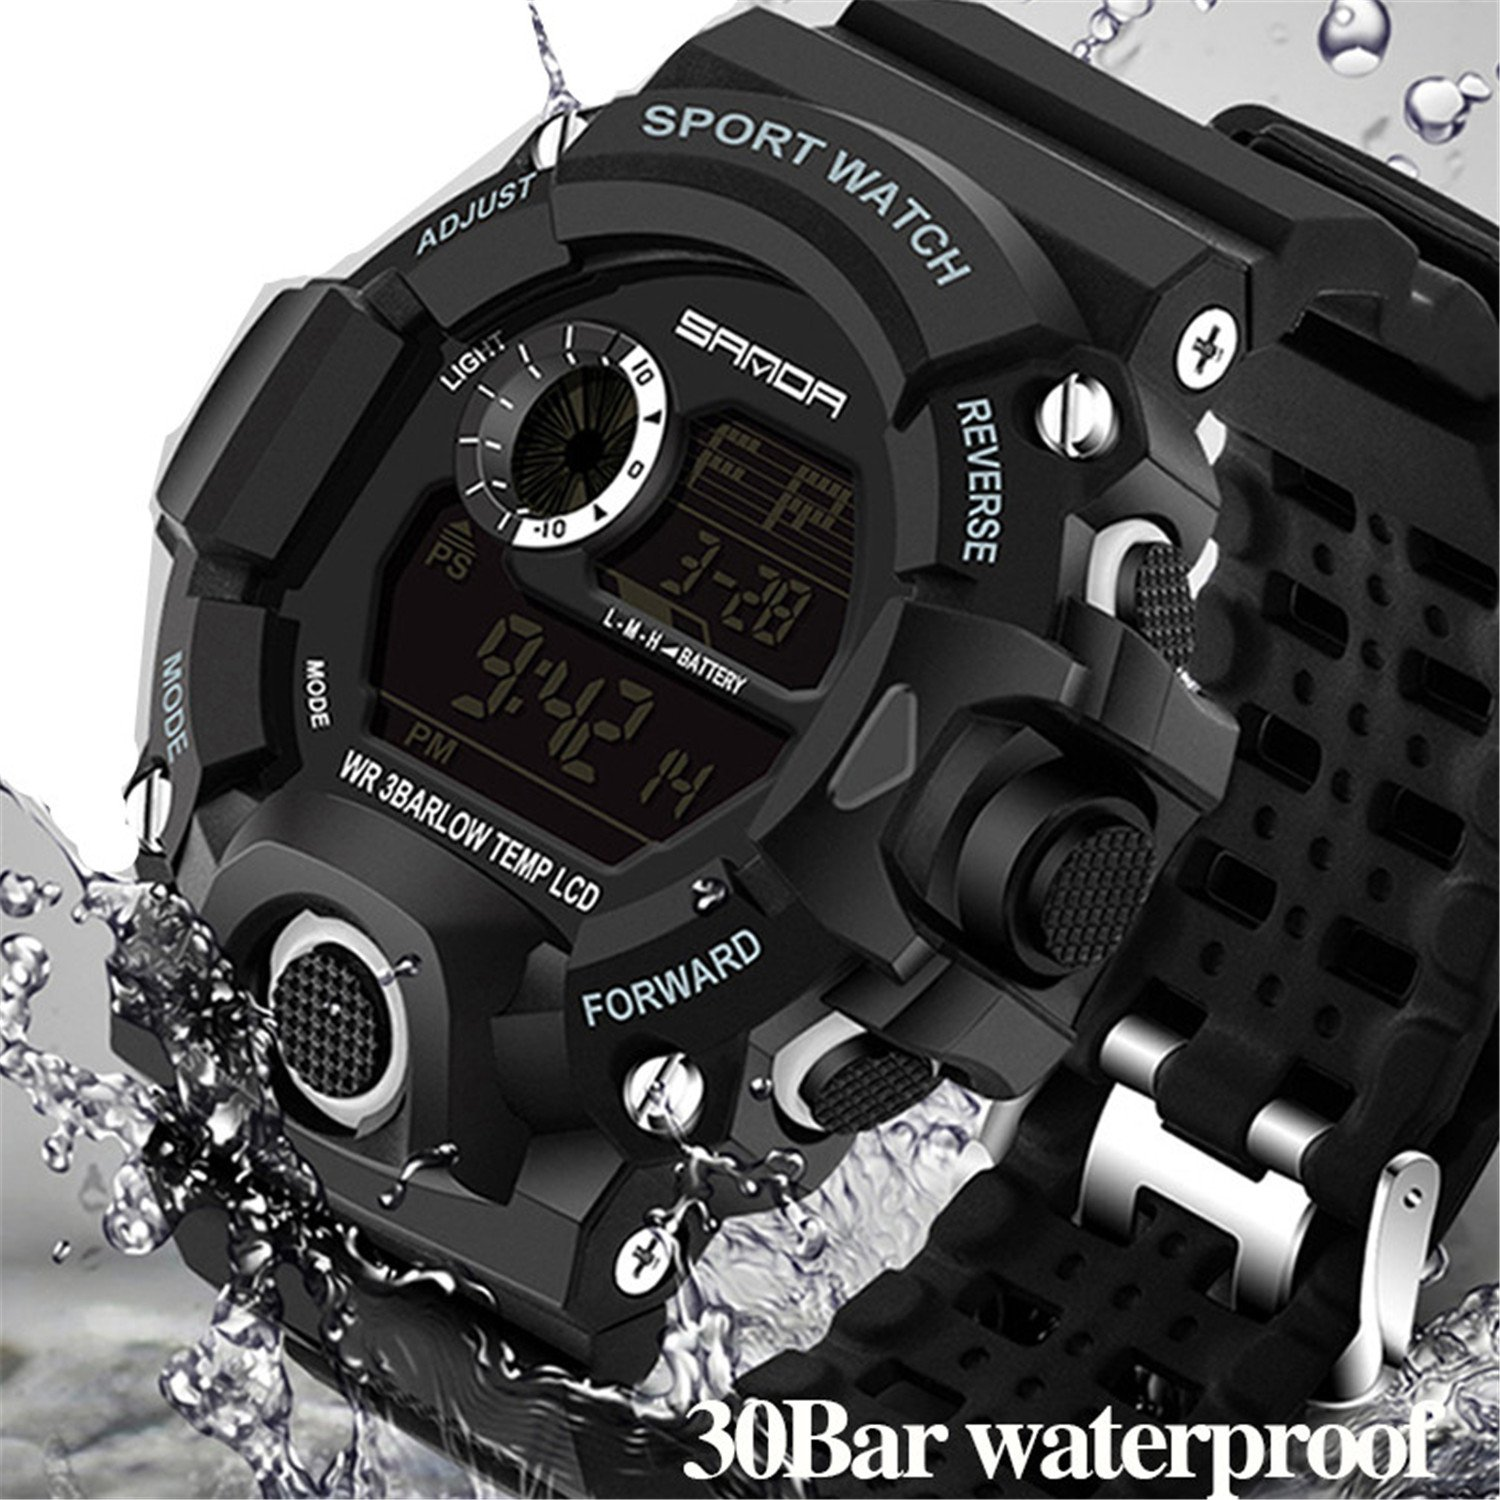 Wdnba Mens Watch Quartz Watch Military Watch Fashion Dive Men's Sport LED Digital Watches by Wdnba